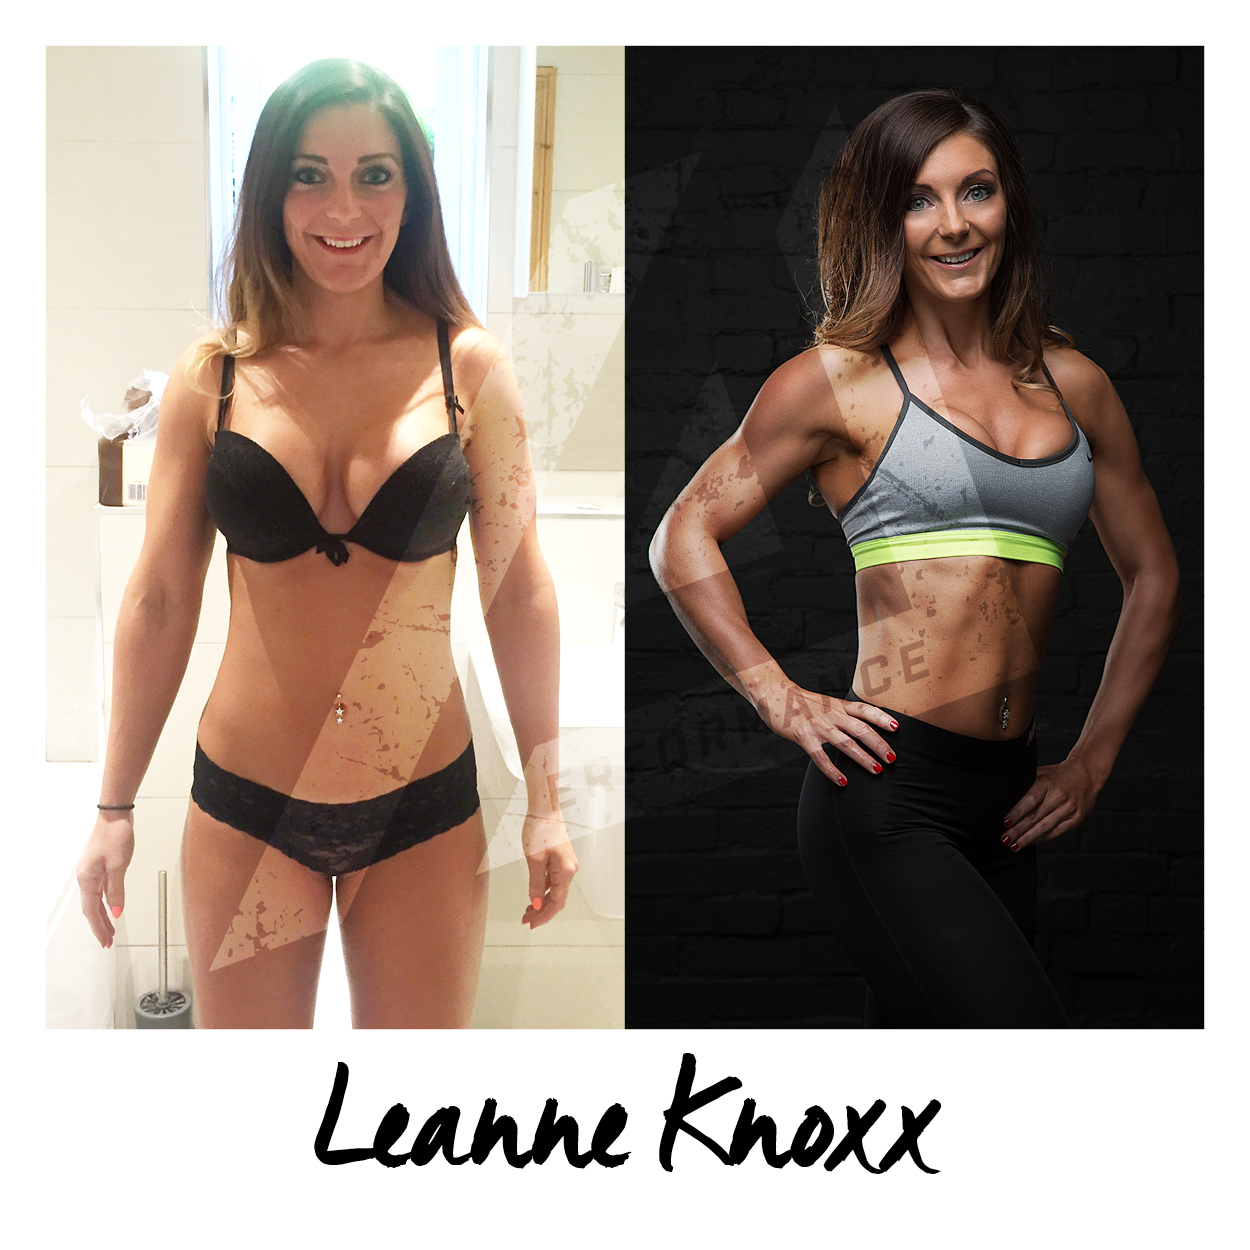 Leanne tells her story of her experience taking part in the 12-Week Photoshoot Challenge. Leanne is experienced in the gym and has been training for years, but just wanted that extra guidance to push past her sticking point and to try and shift some body fat from stubborn body parts (legs). Leanne did amazing, dropping from 150-134lbs in 12 weeks, getting the leanest she ever has.